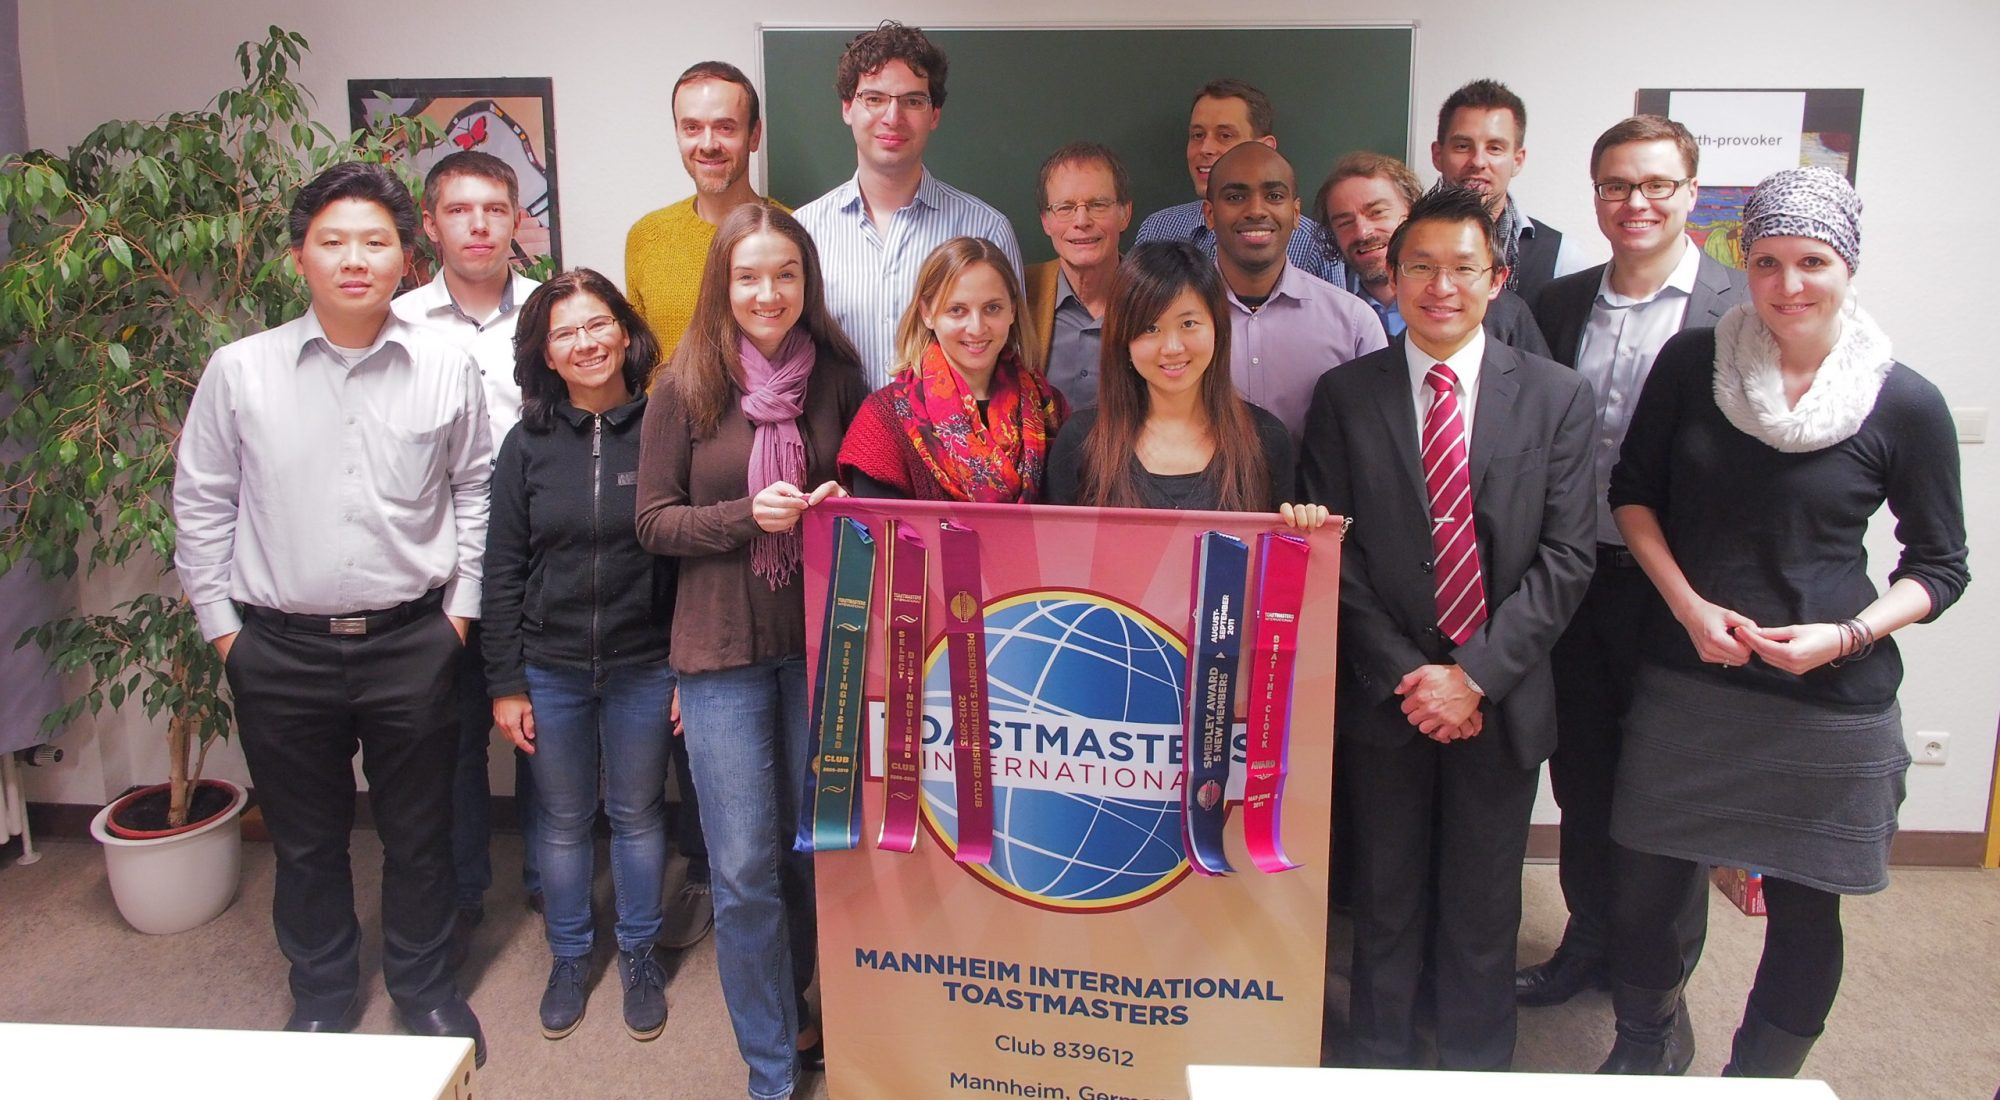 Mannheim International Toastmasters Club